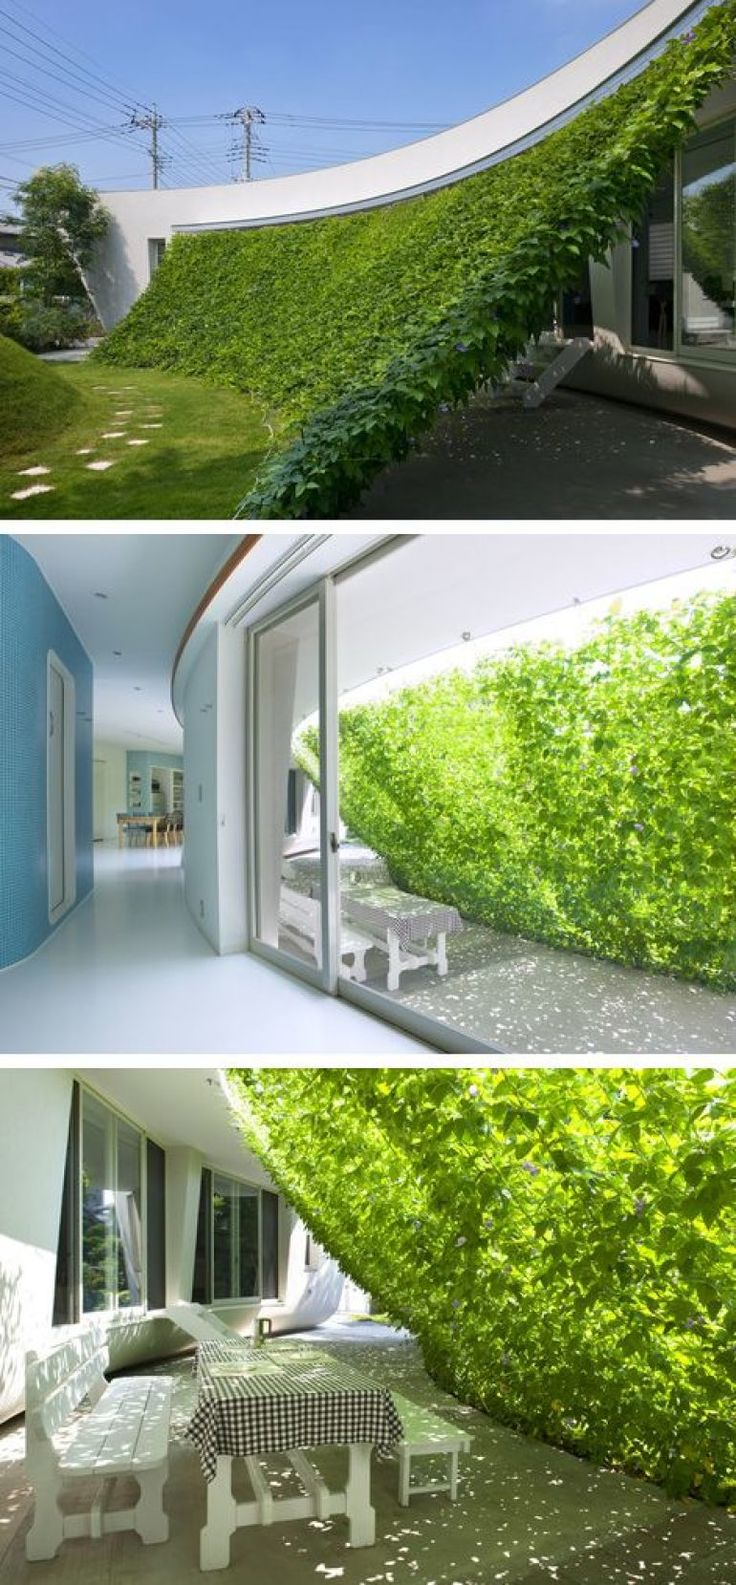 Passive solar/shade garden extension.  Great idea with wisteria or trumpet vine or even grapes